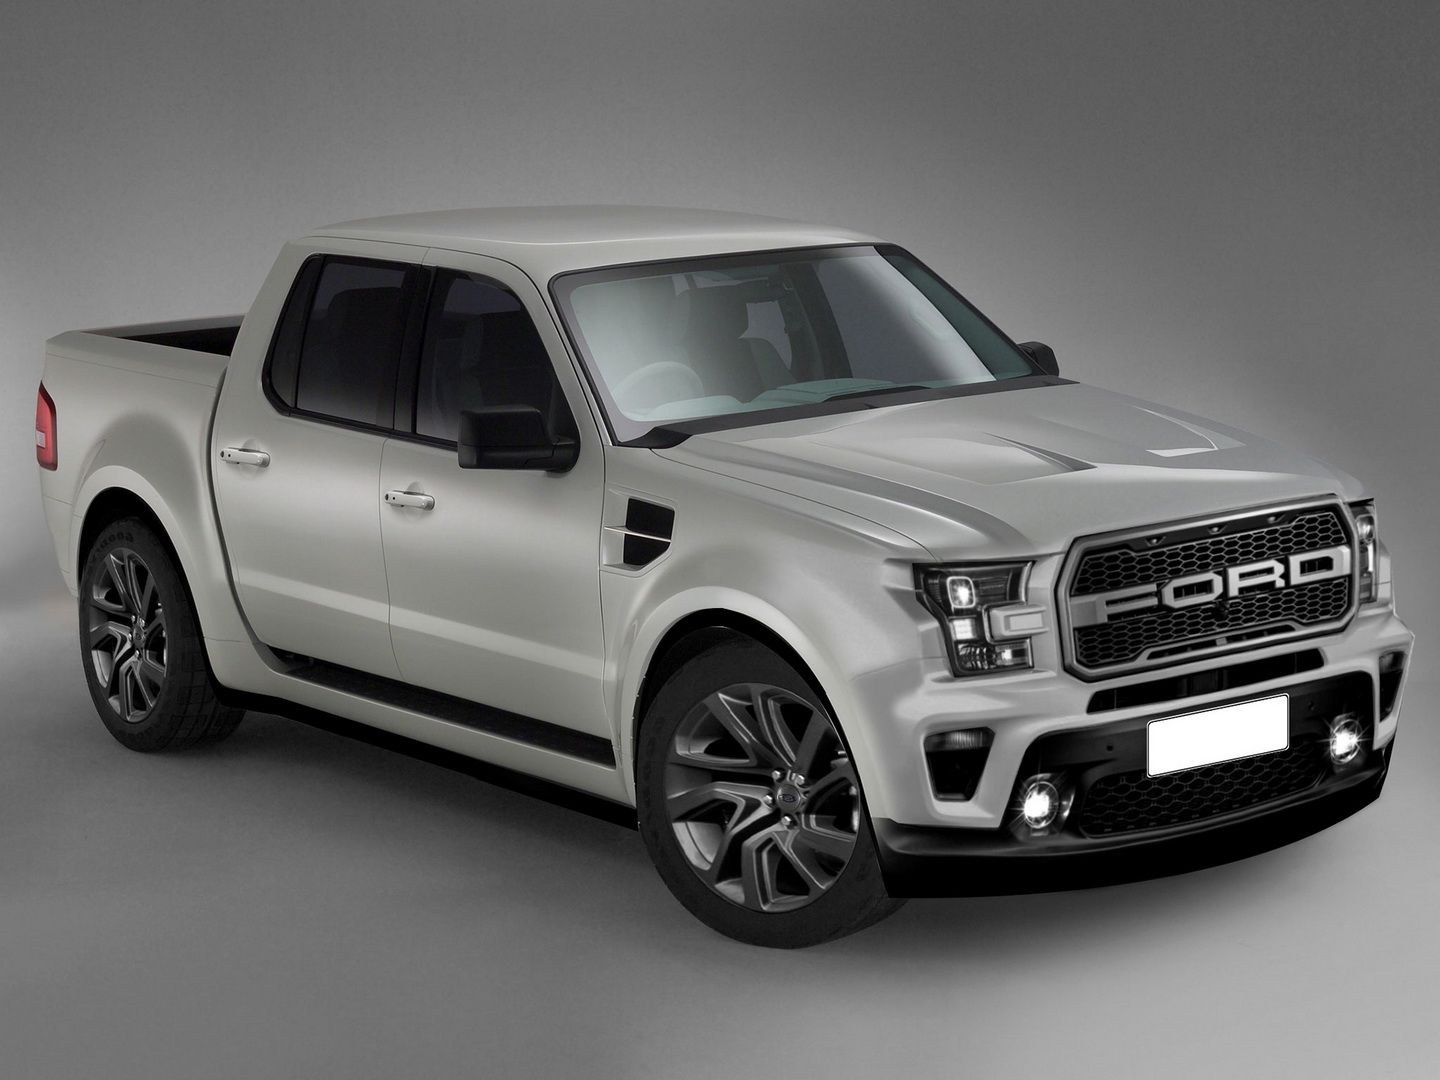 2021 Ford 'Baby' Bronco Won't Look Like A 'Baby' Defender